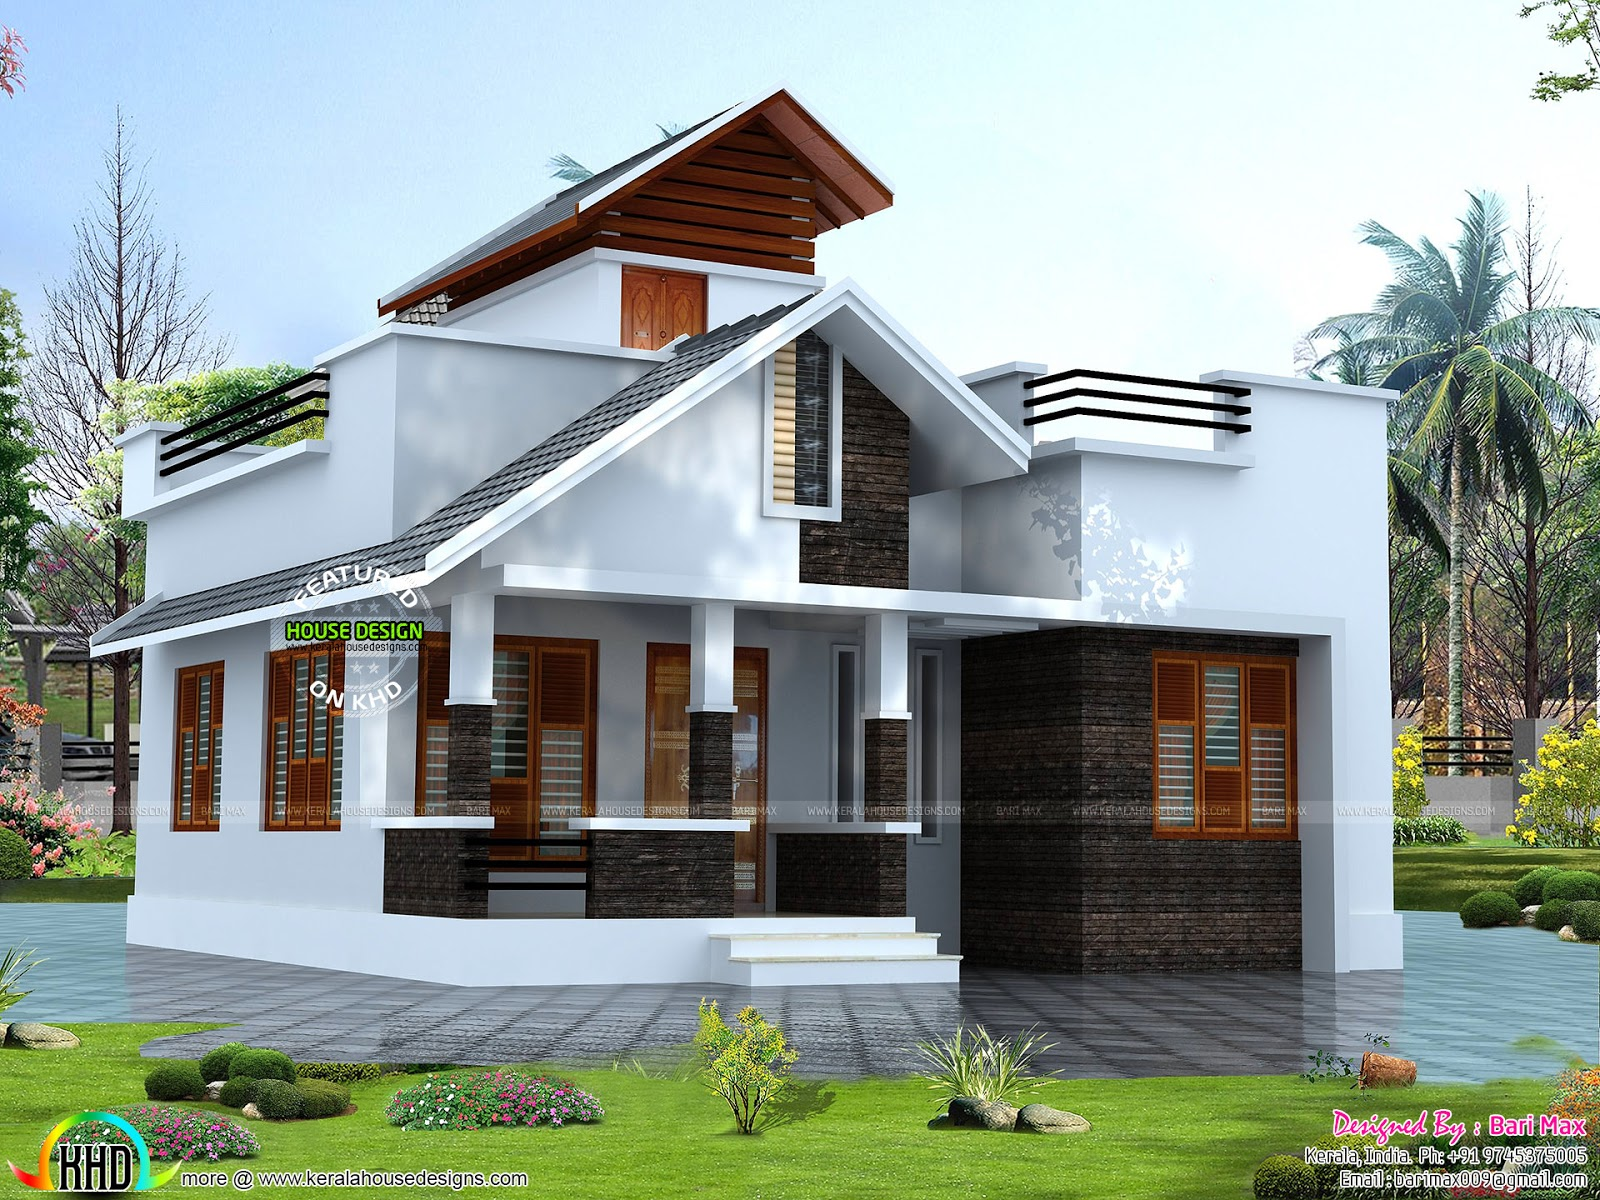 Rs 12 lakh house architecture kerala home design and for House architecture styles in india